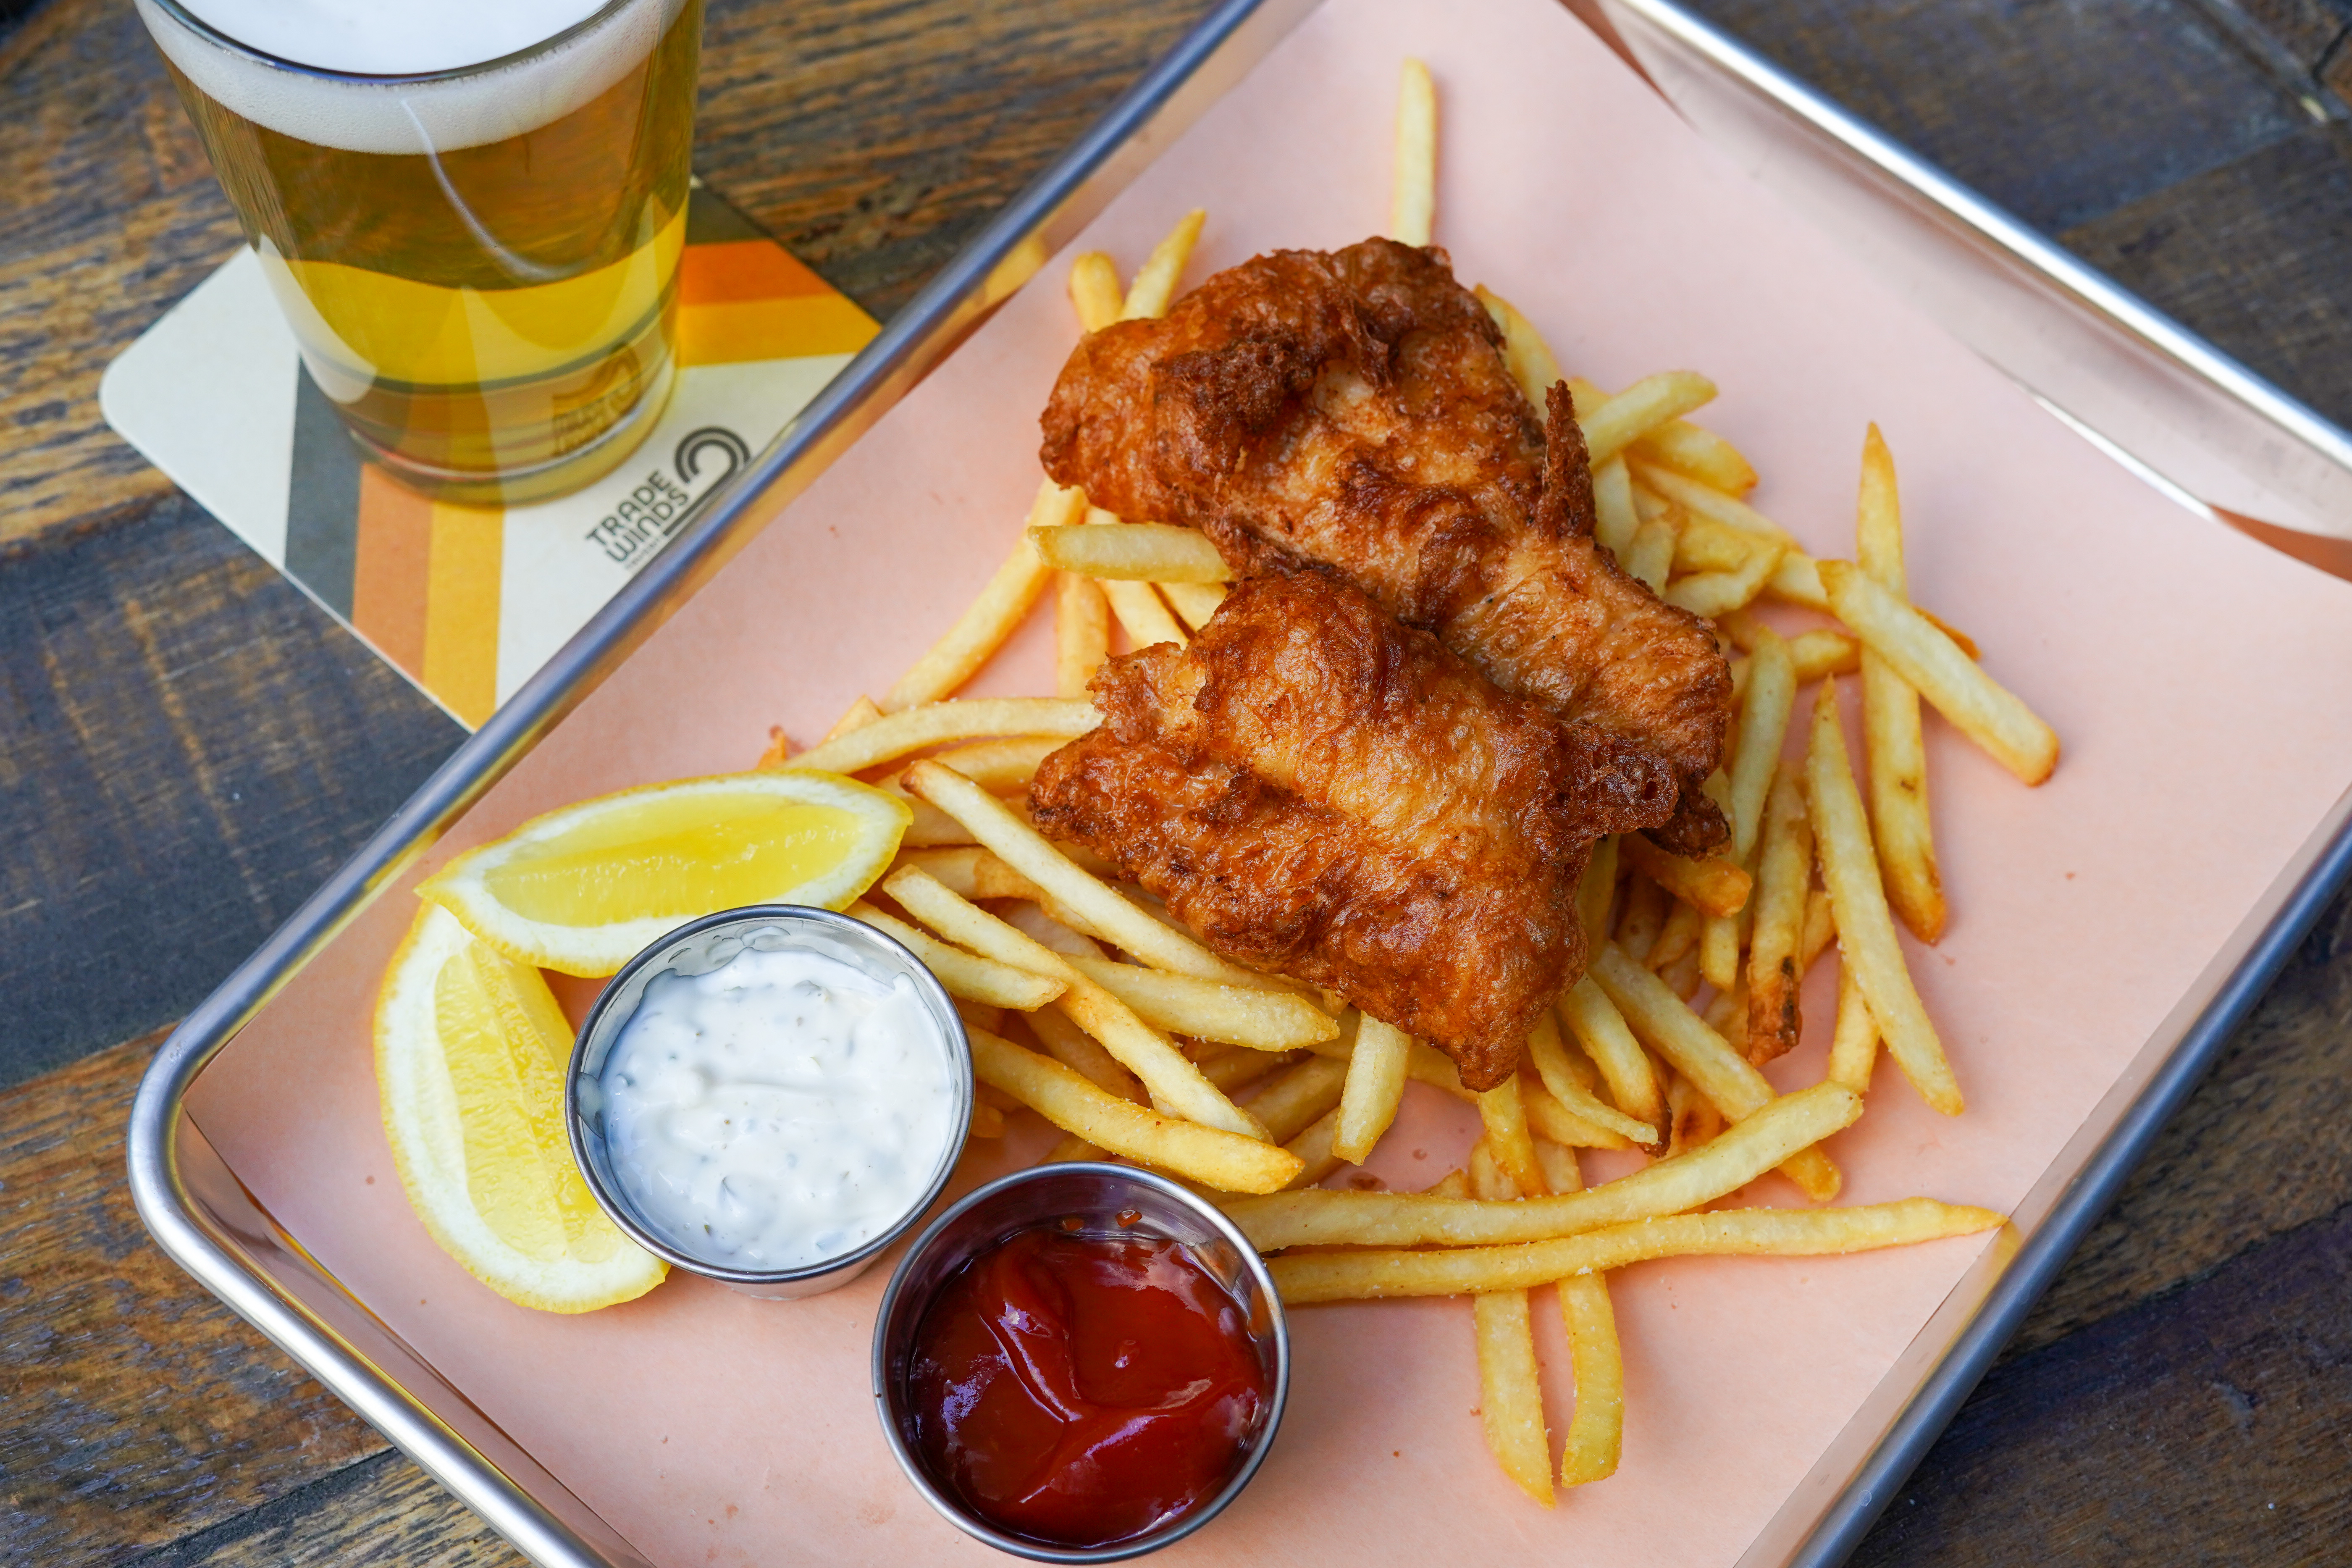 """A top-down view of fried fish with skinny fries, and a beer on a coaster that says """"Trade Winds Tavern"""" with a retro logo"""